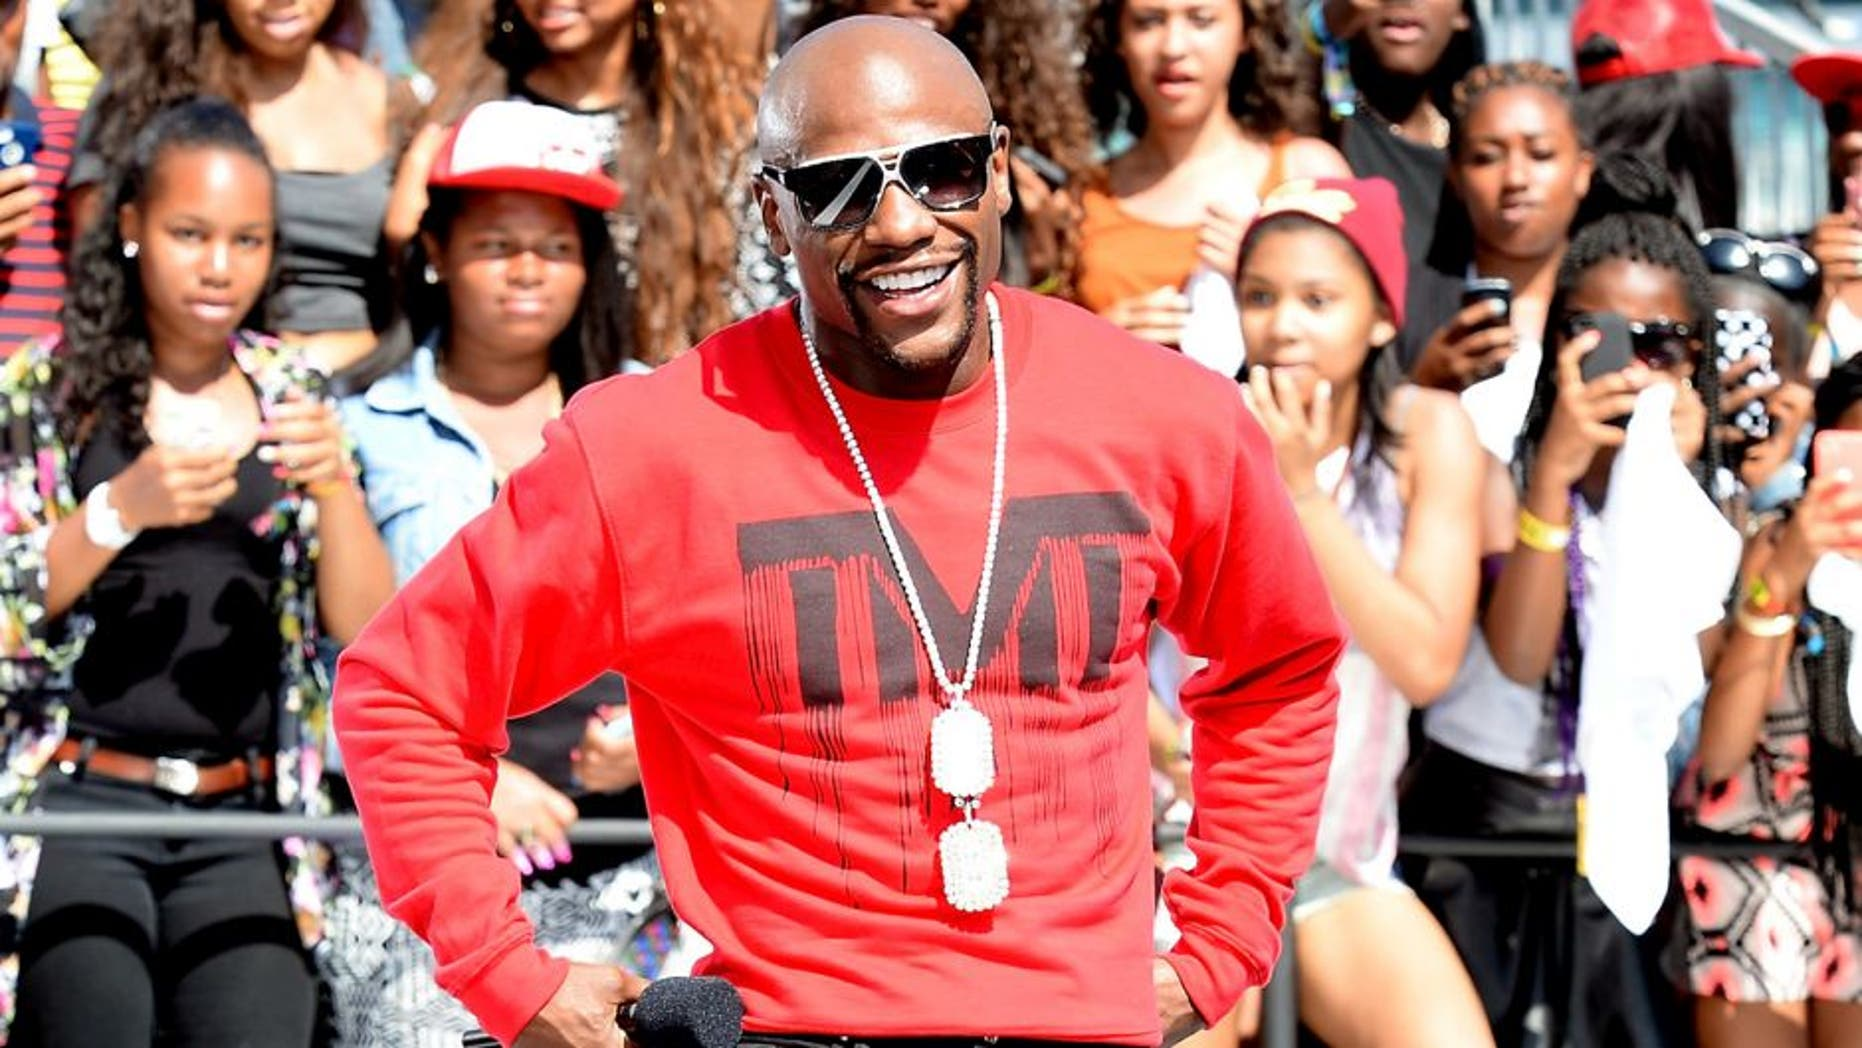 LOS ANGELES, CA - JUNE 28: Professional boxer Floyd Mayweather Jr. speaks onstage at 106 & Park Live Presented By Coca Cola during the 2014 BET Experience at L.A. LIVE on June 28, 2014 in Los Angeles, California. (Photo by Earl Gibson/BET/Getty Images for BET)